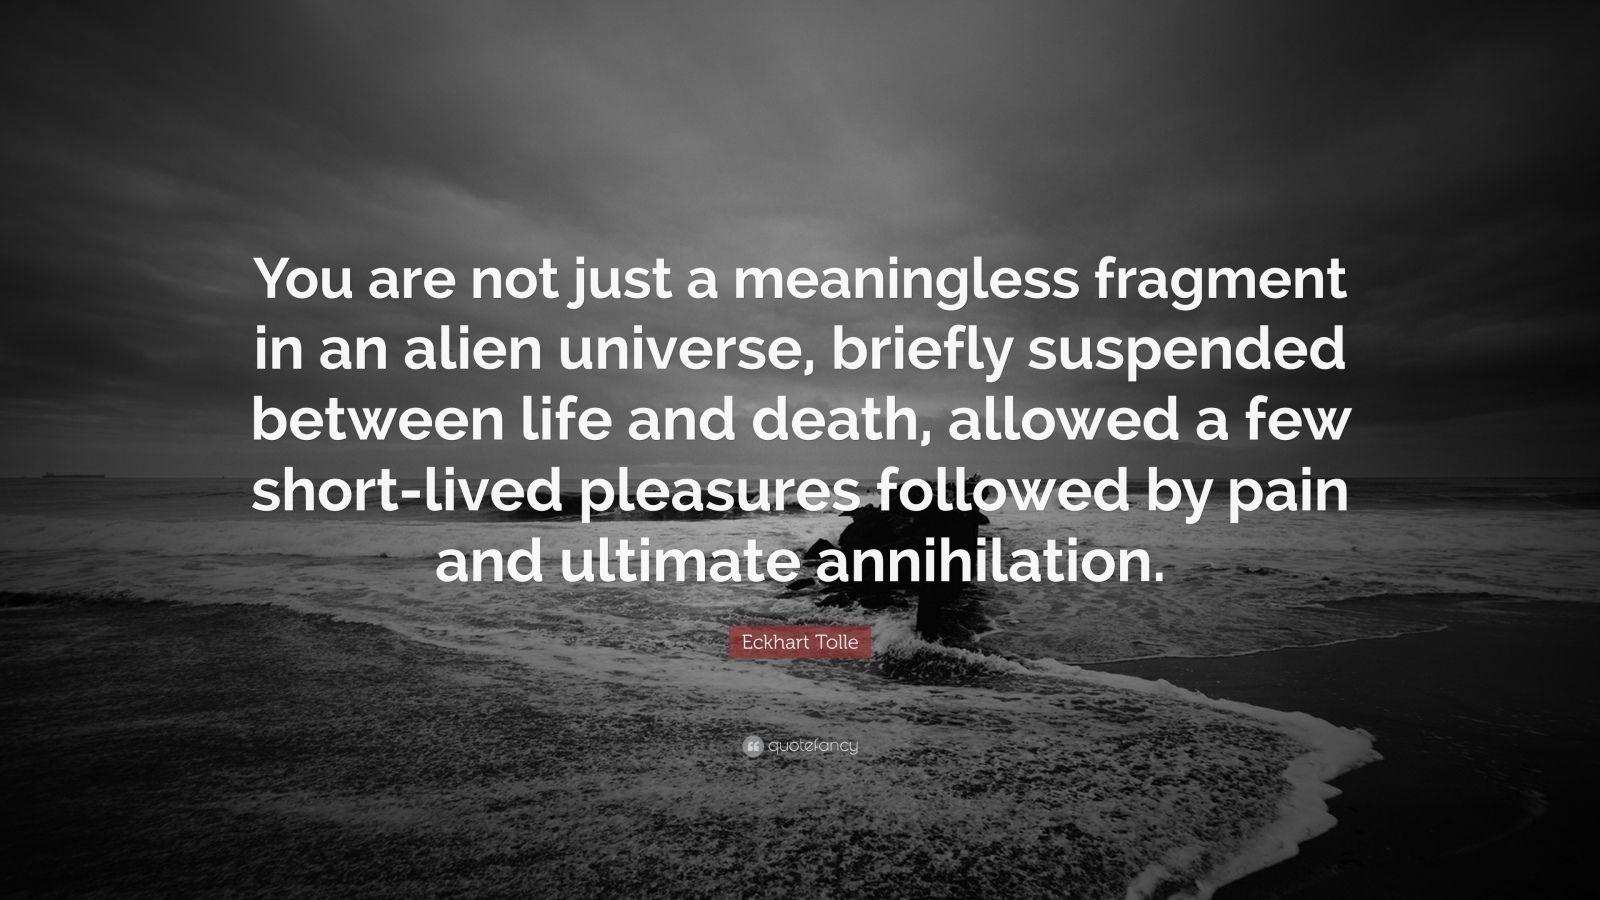 """Eckhart Tolle Quote: """"You are not just a meaningless fragment in an alien universe, briefly suspended between life and death, allowed a few short-lived pleasures followed by pain and ultimate annihilation."""""""